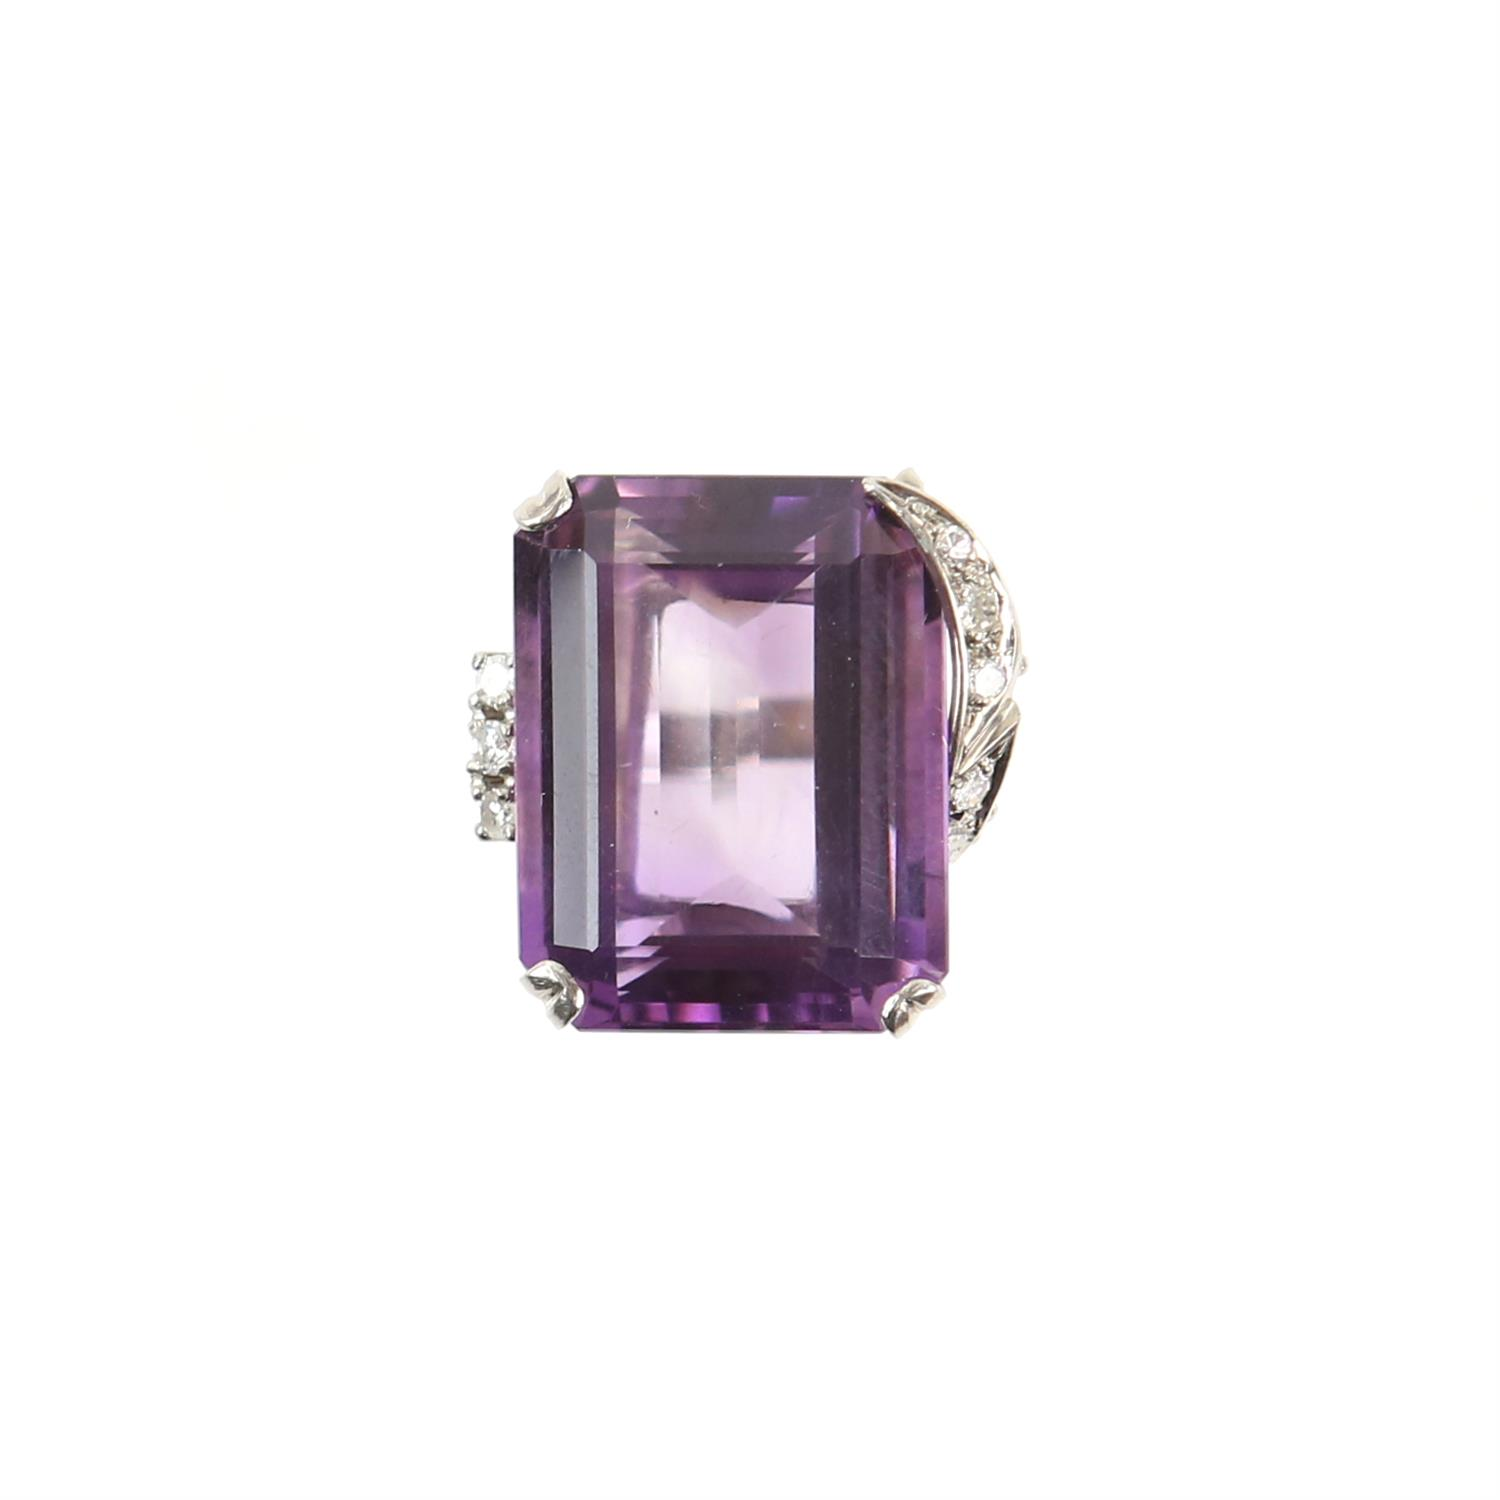 Amethyst and diamond cocktail ring, central rectangular cut amethyst, estimate weight 22.78 carats, - Image 2 of 7